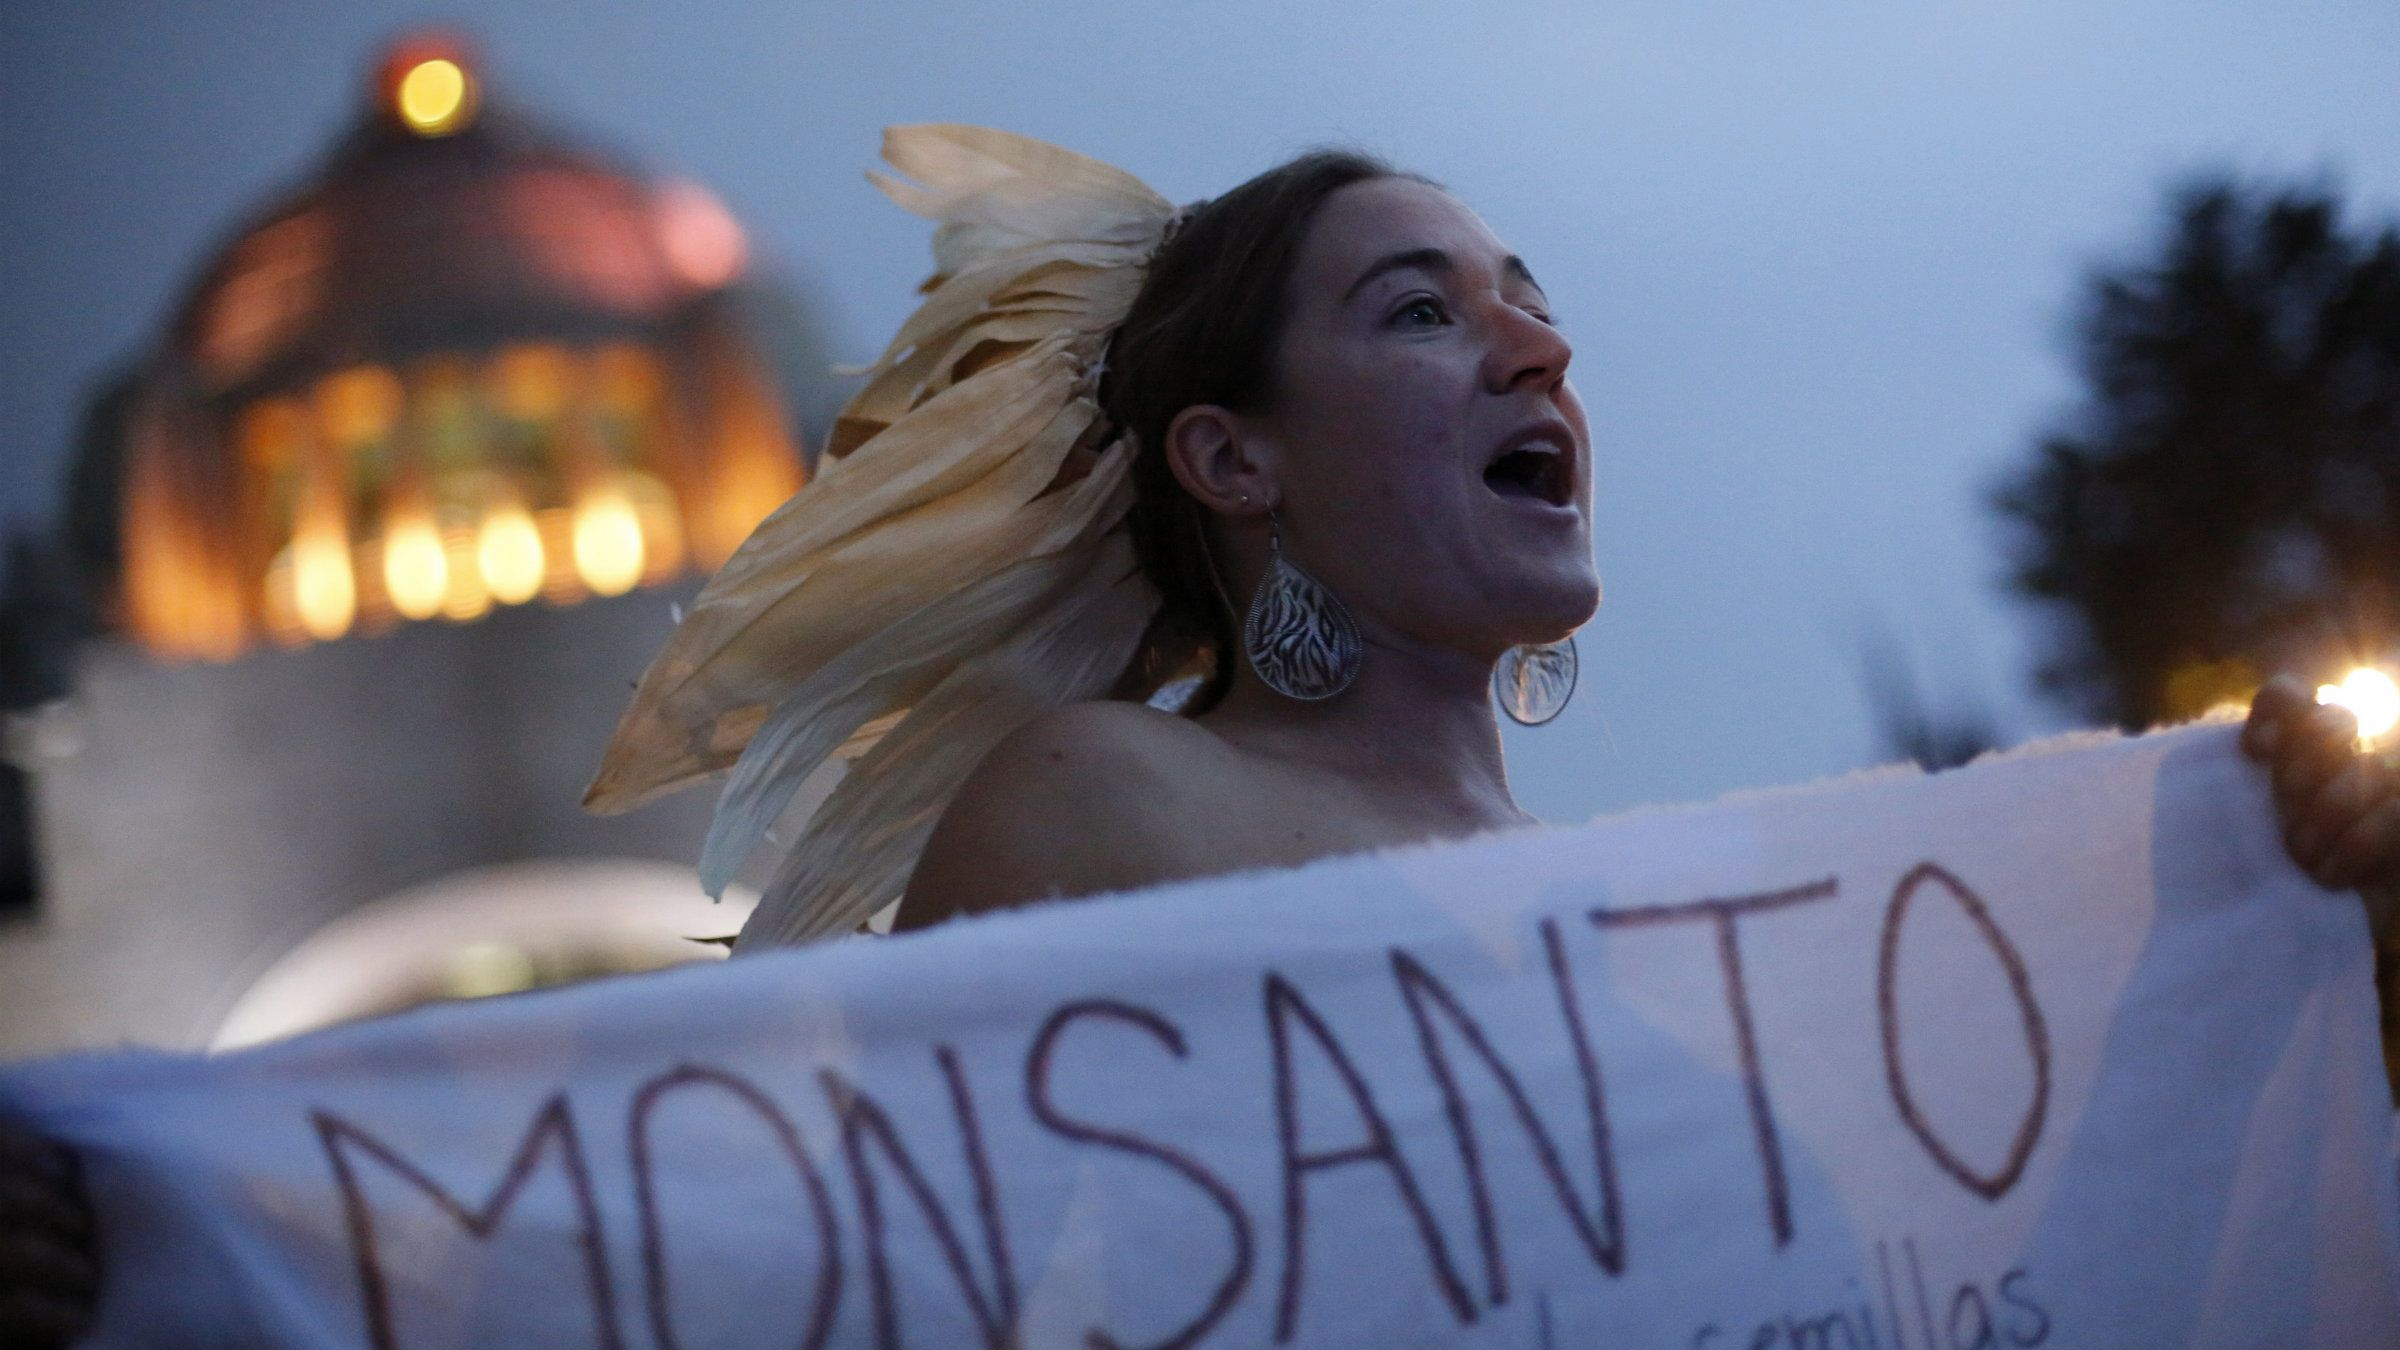 A demonstrator holds a banner protesting against Monsanto Co